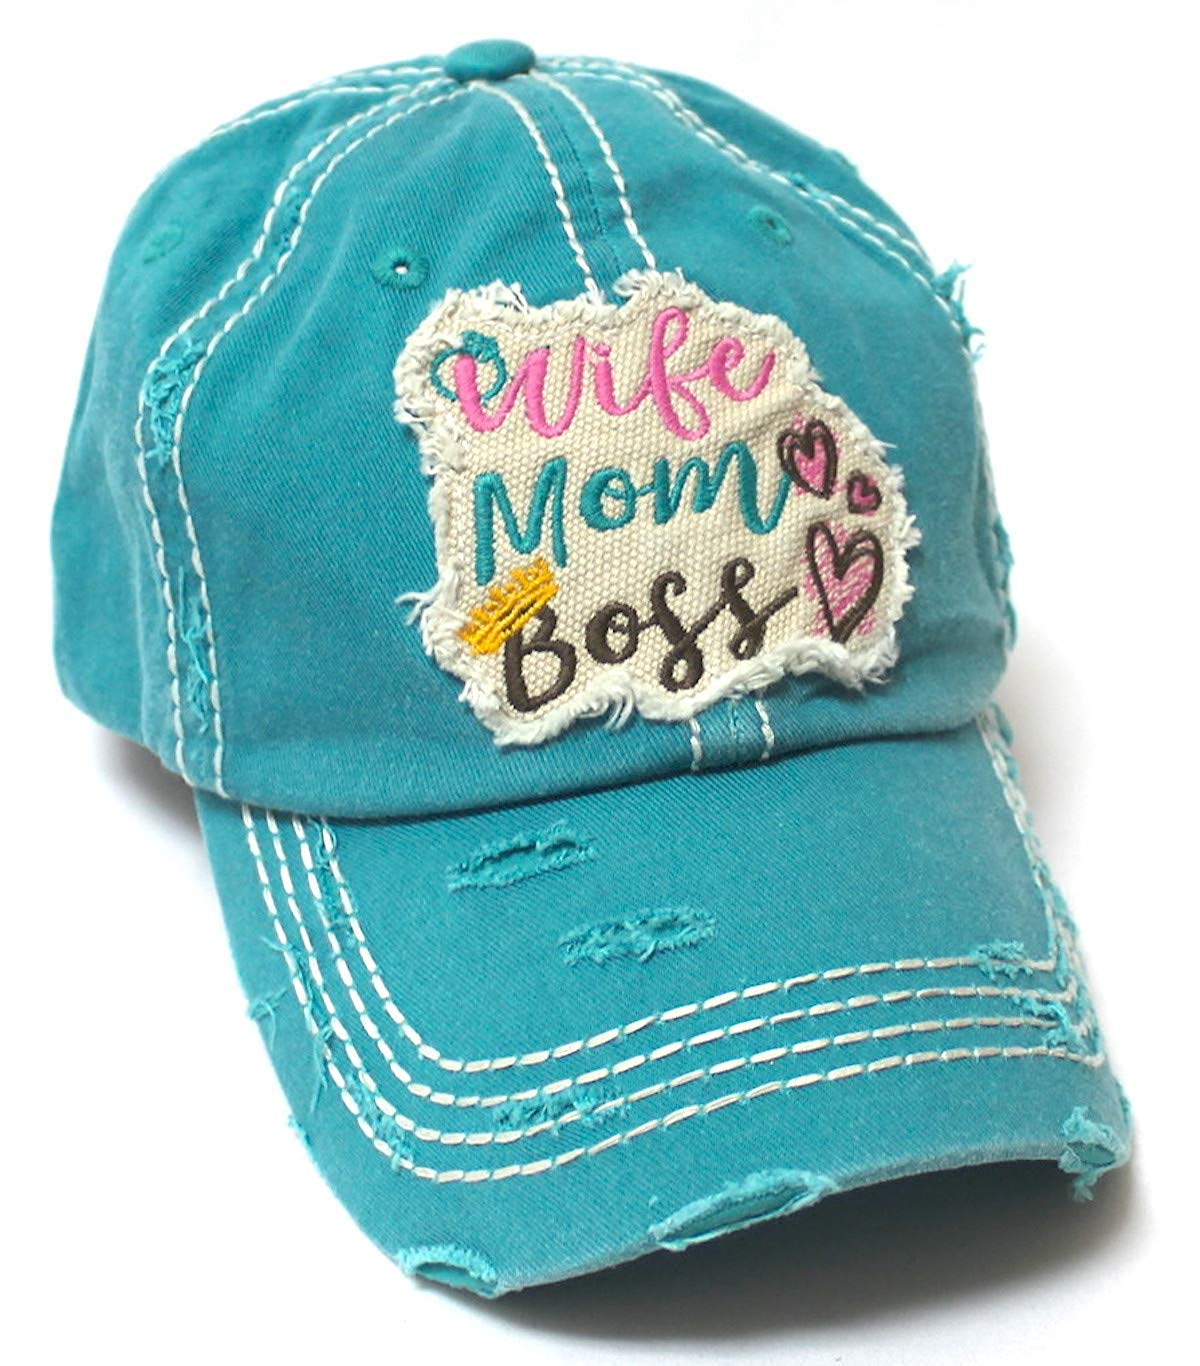 Women's Ballcap Wife, Mom, Boss Patch Embroidery Vintage Hat, Jewel Turquoise - Caps 'N Vintage